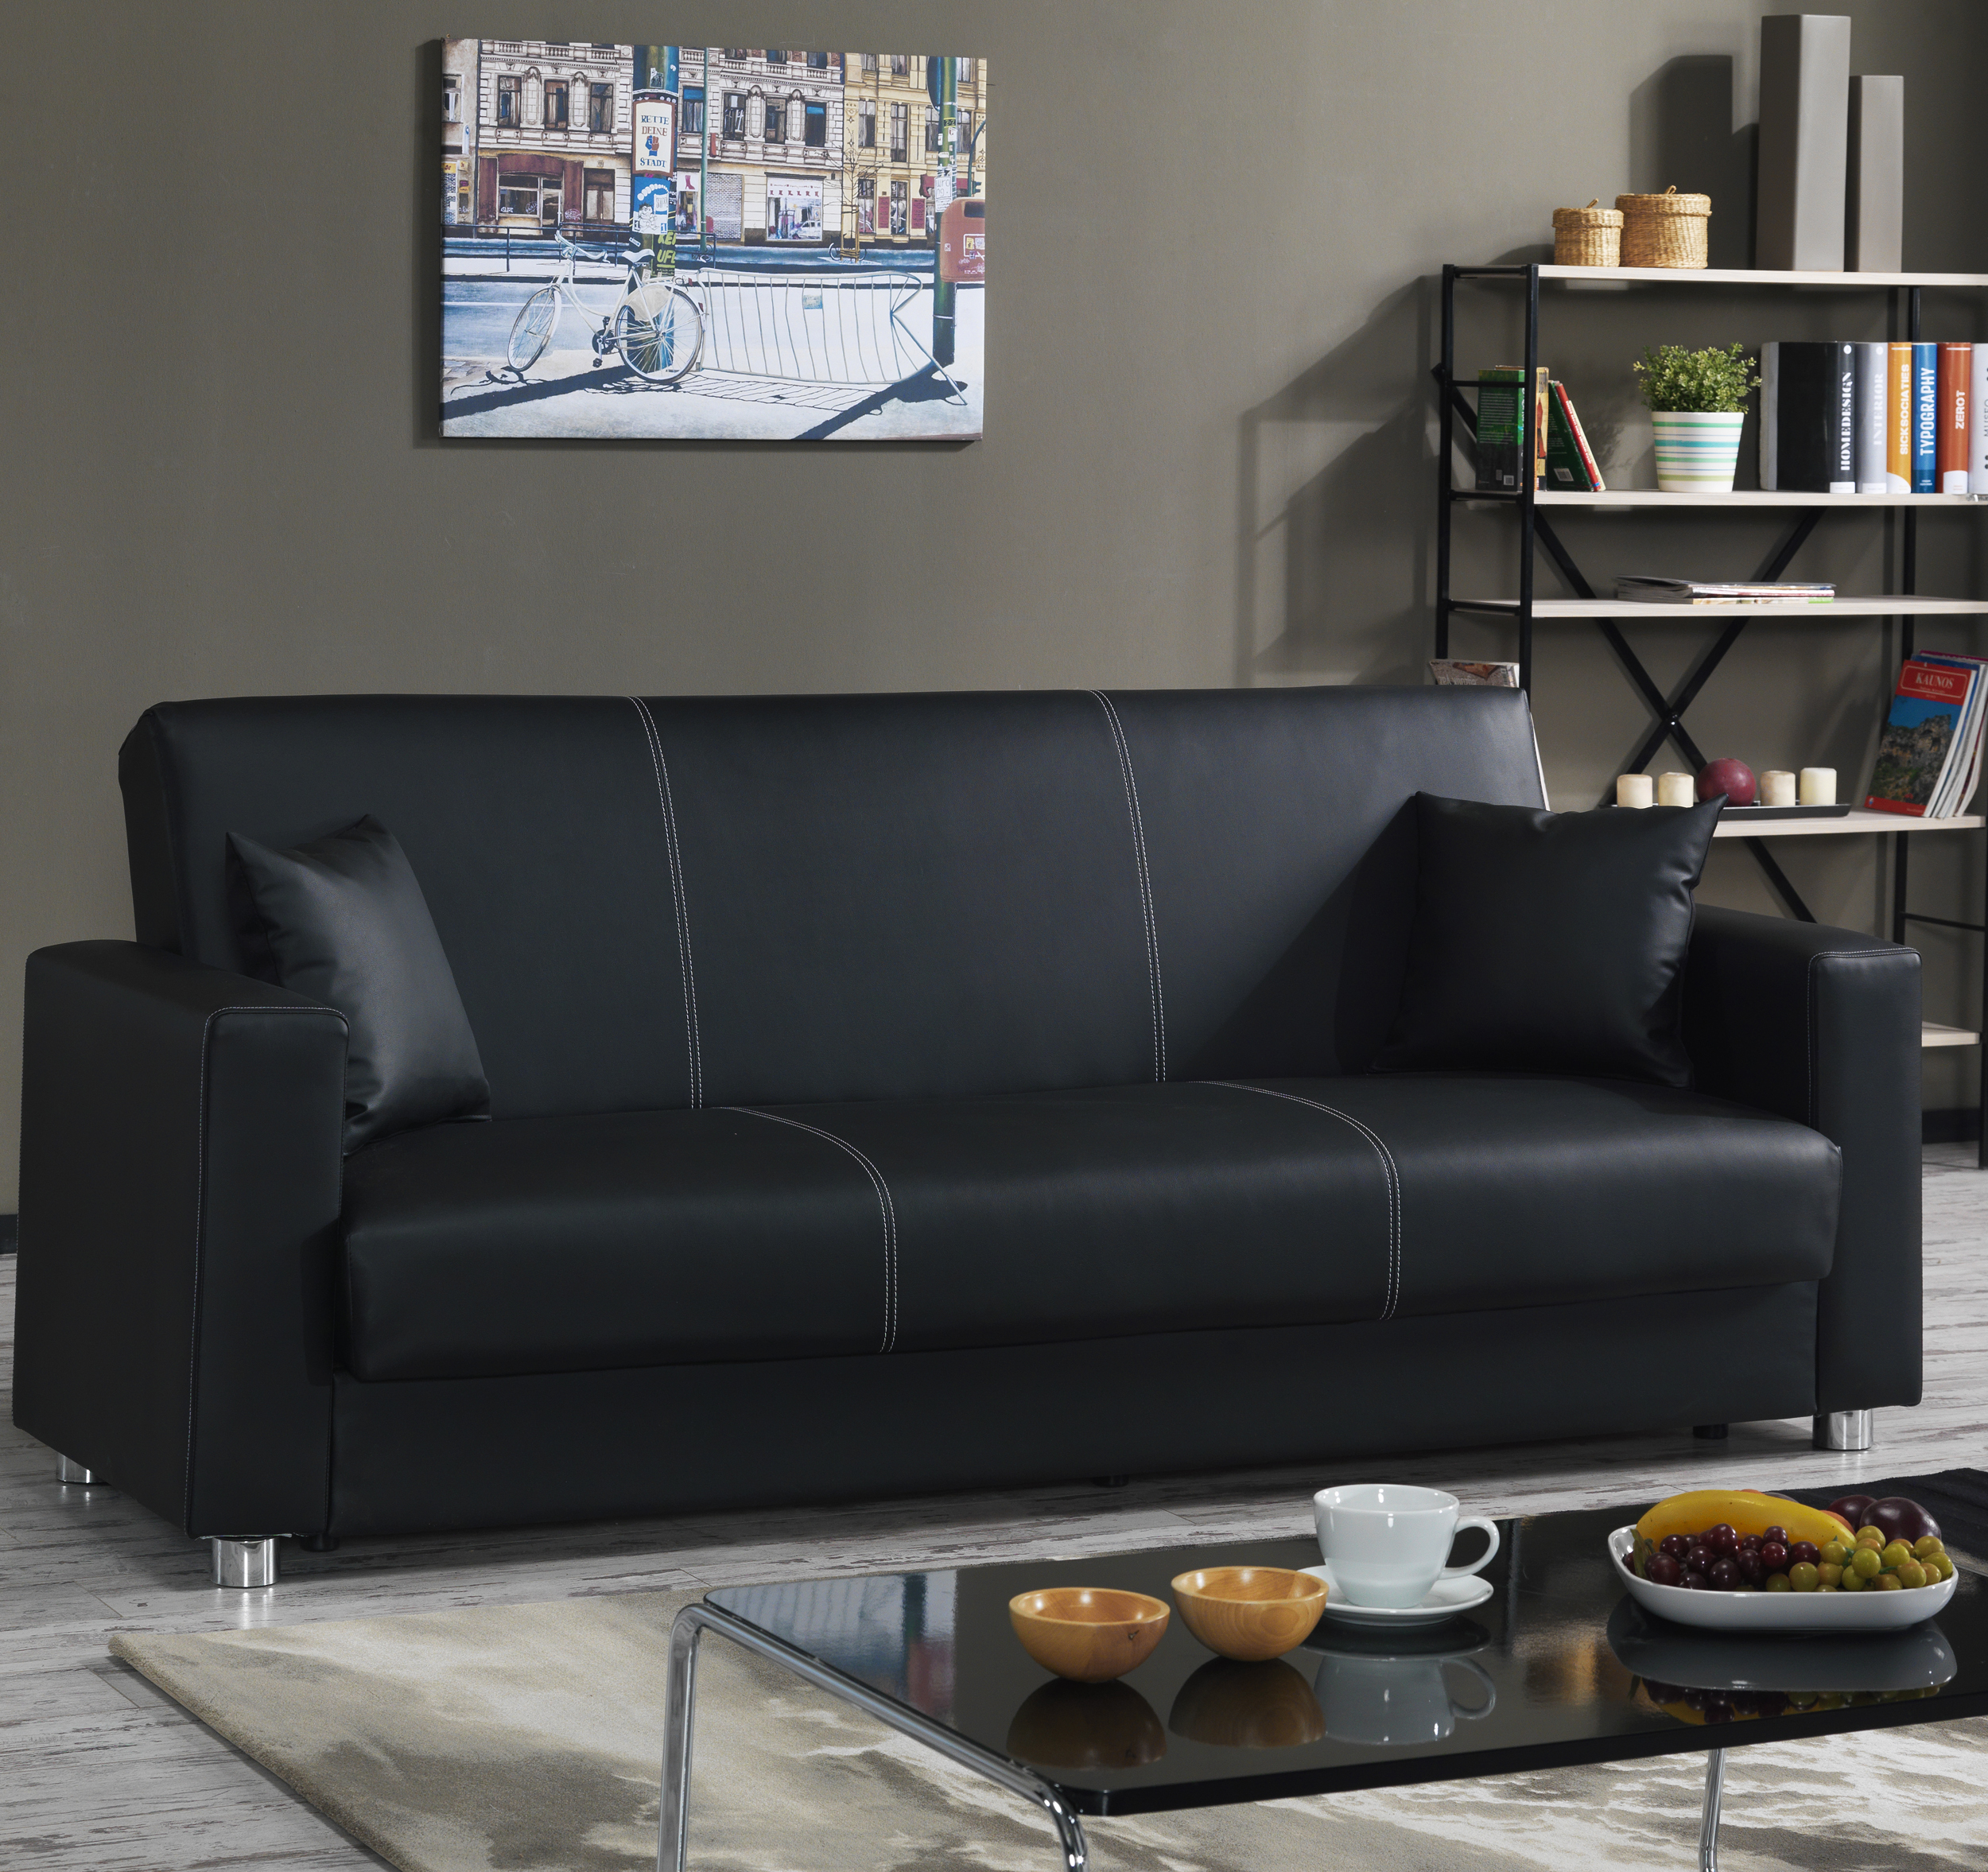 Tempo Black Leatherette Convertible Sofa by Casamode